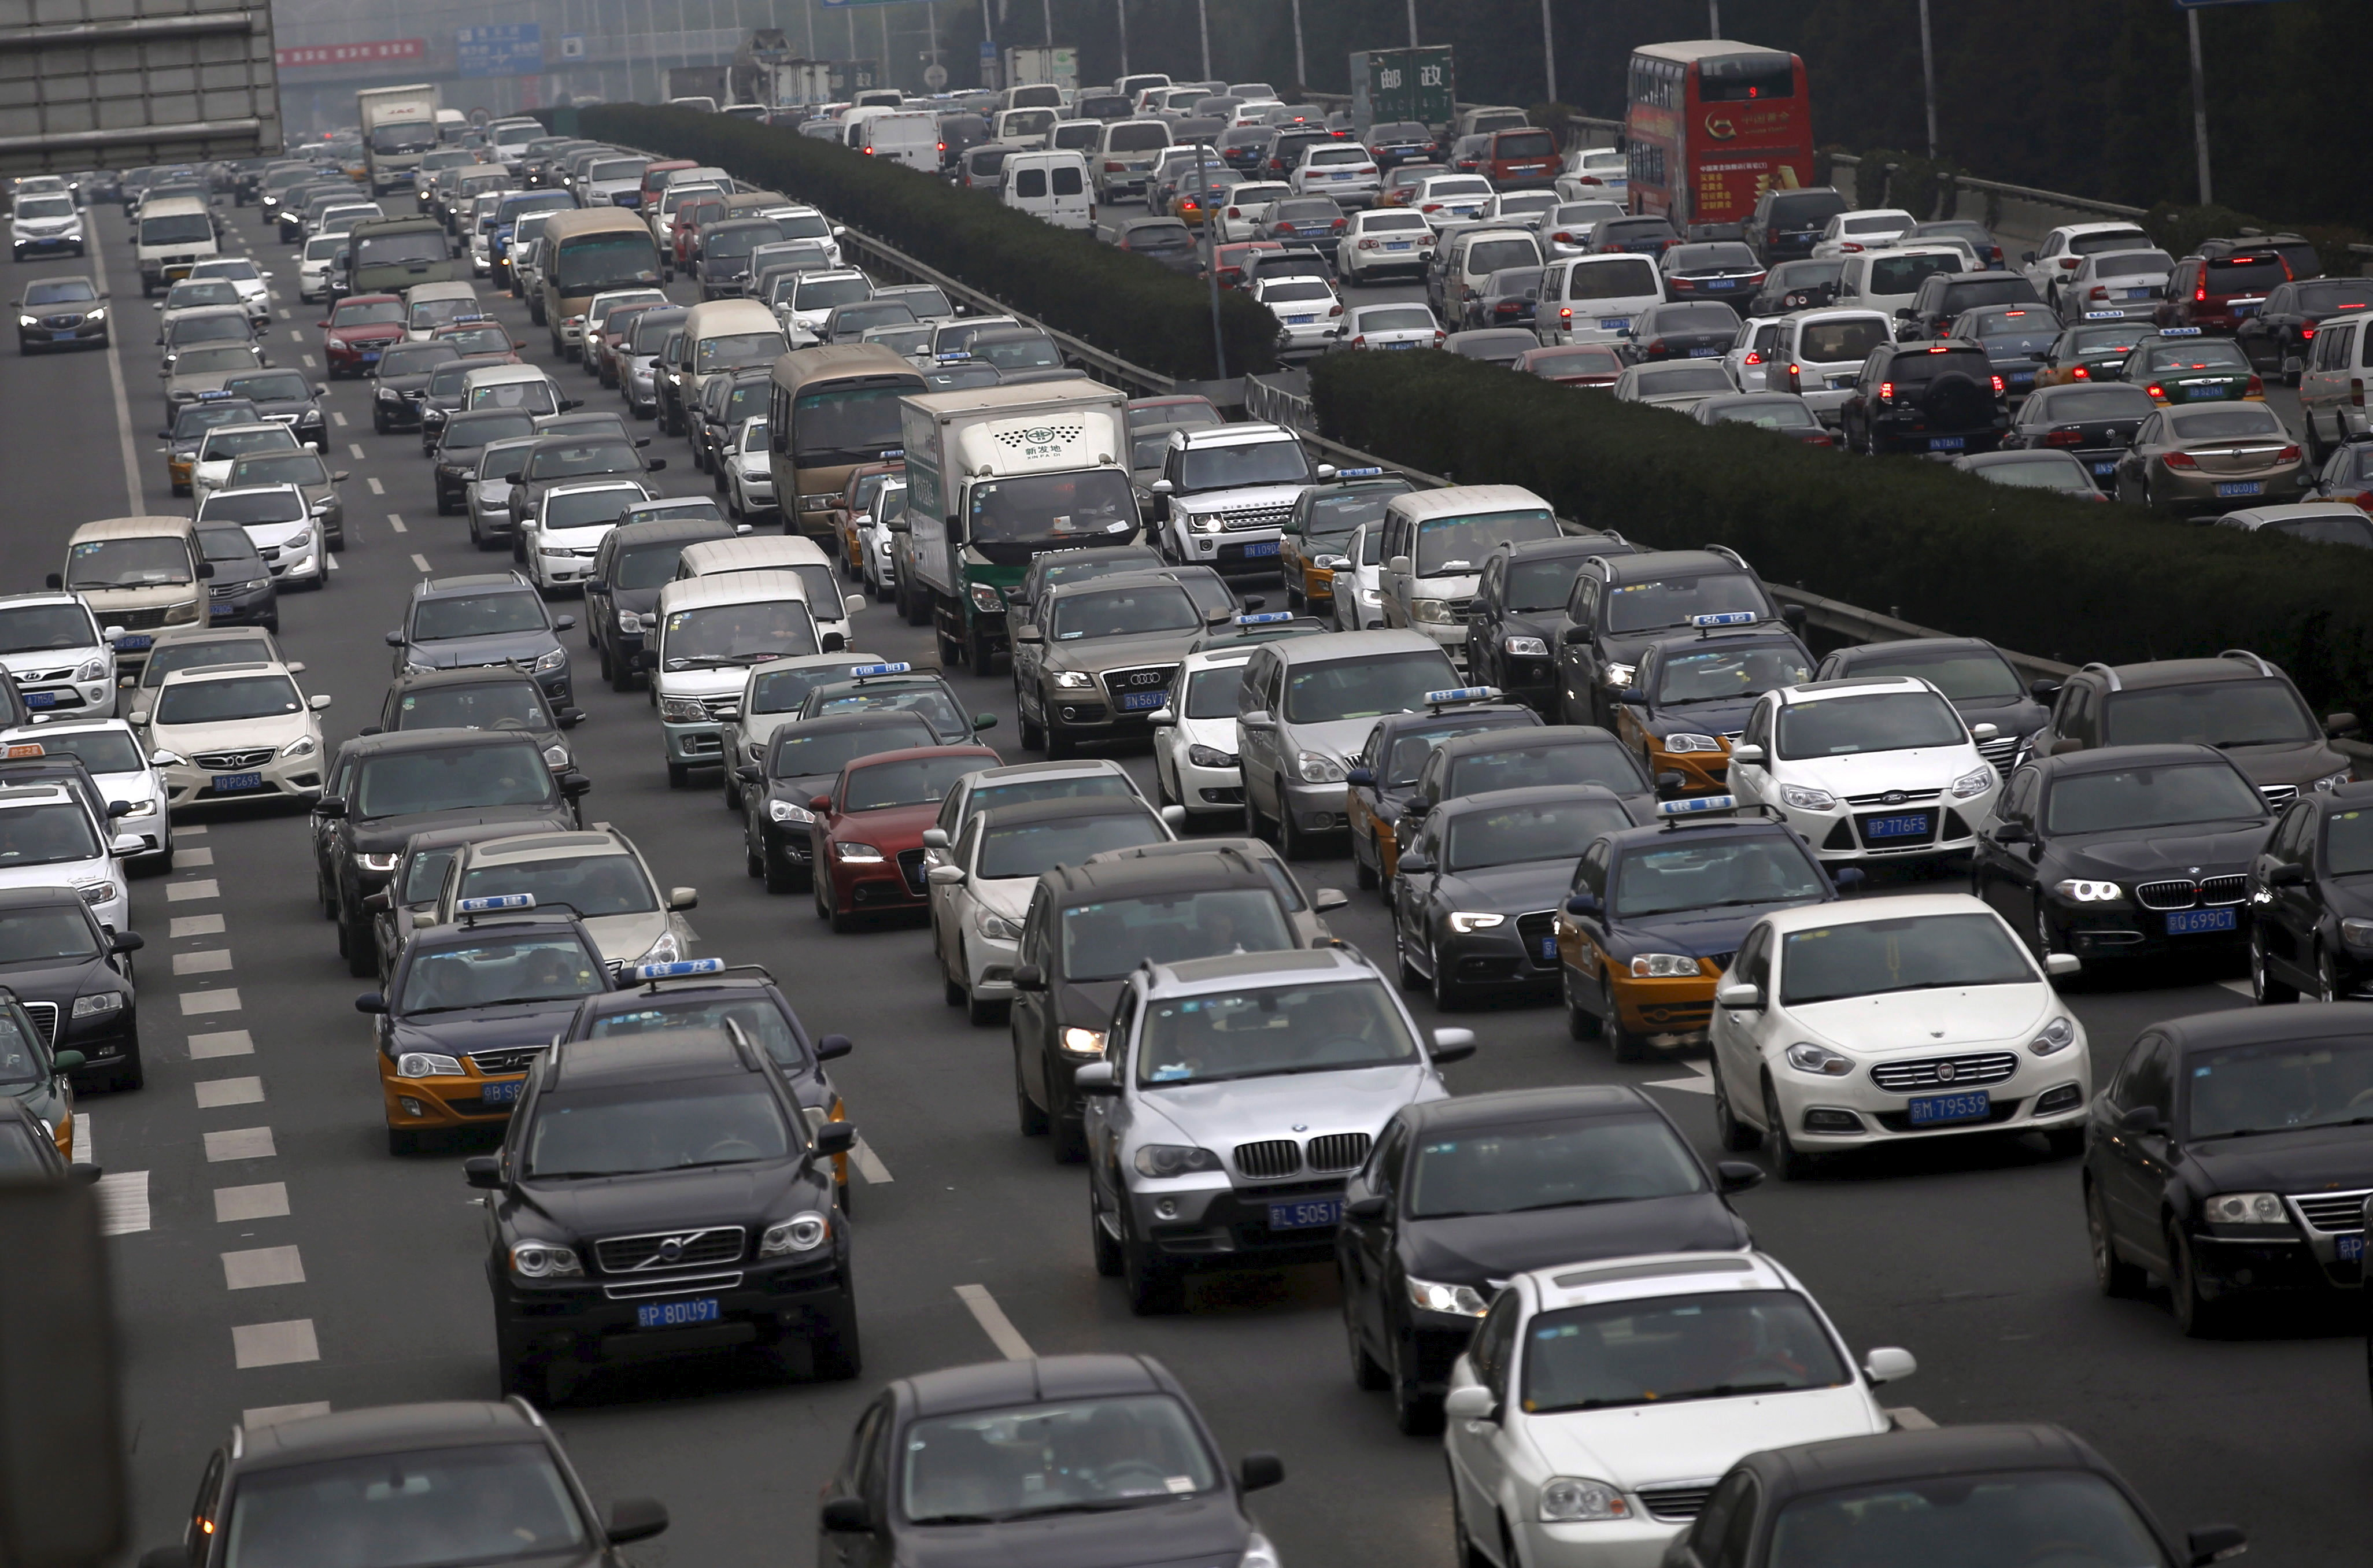 A ring road is congested with traffic in Beijing, China, in this November 18, 2015 file photo. Some global automakers are worried that China is pushing its weight around as the world's biggest car market - by enforcing its own, often outdated, vehicle certification standards on foreign cars. REUTERS/Kim Kyung-Hoon/Files - RTX24ZJR